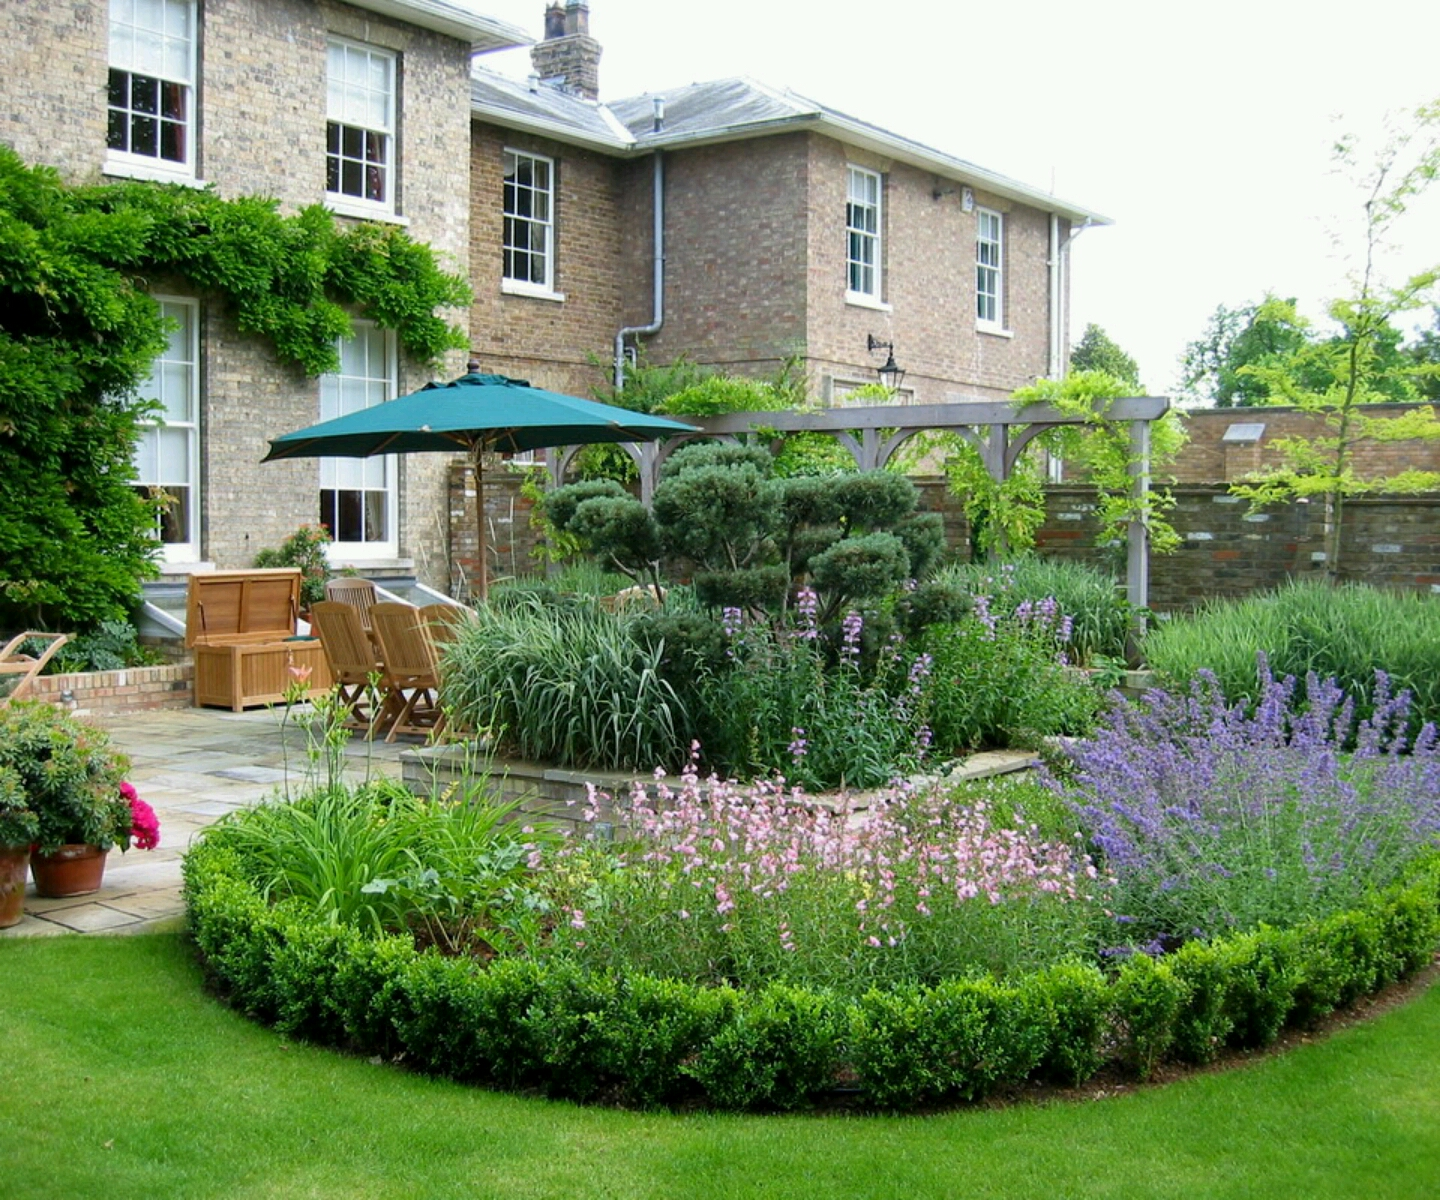 Home And Garden Design Ideas: Modern Garden Design Ideas Photograph